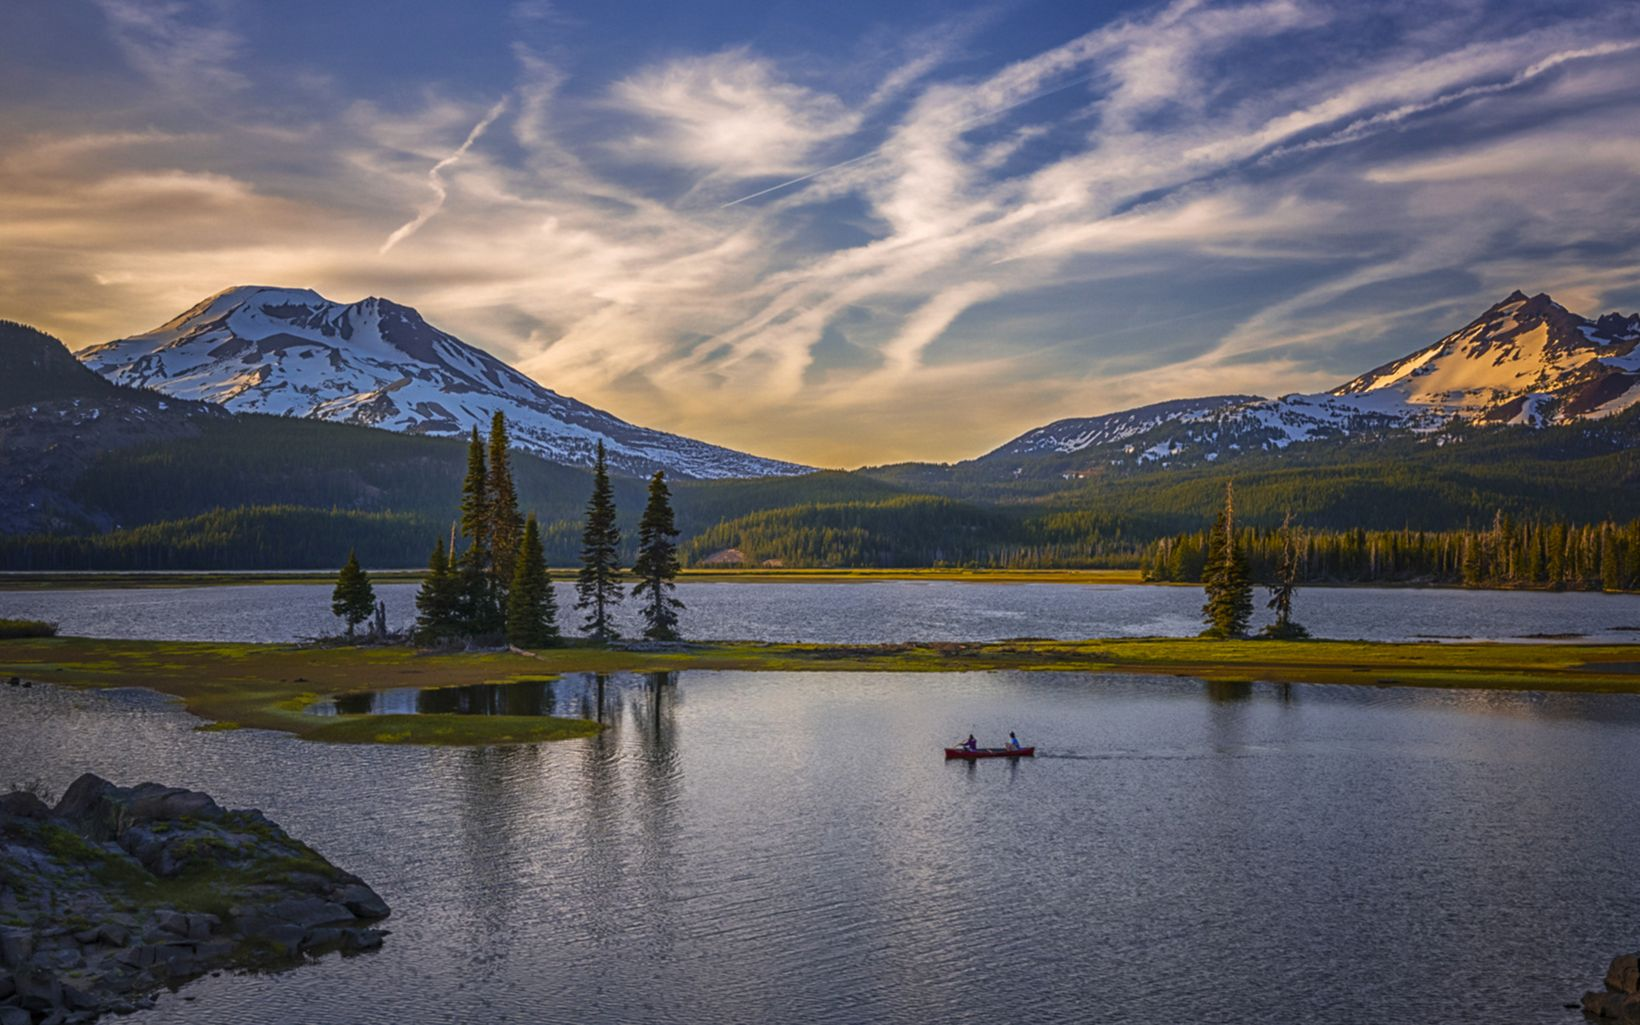 Along the beautiful Cascade Lakes Scenic Byway